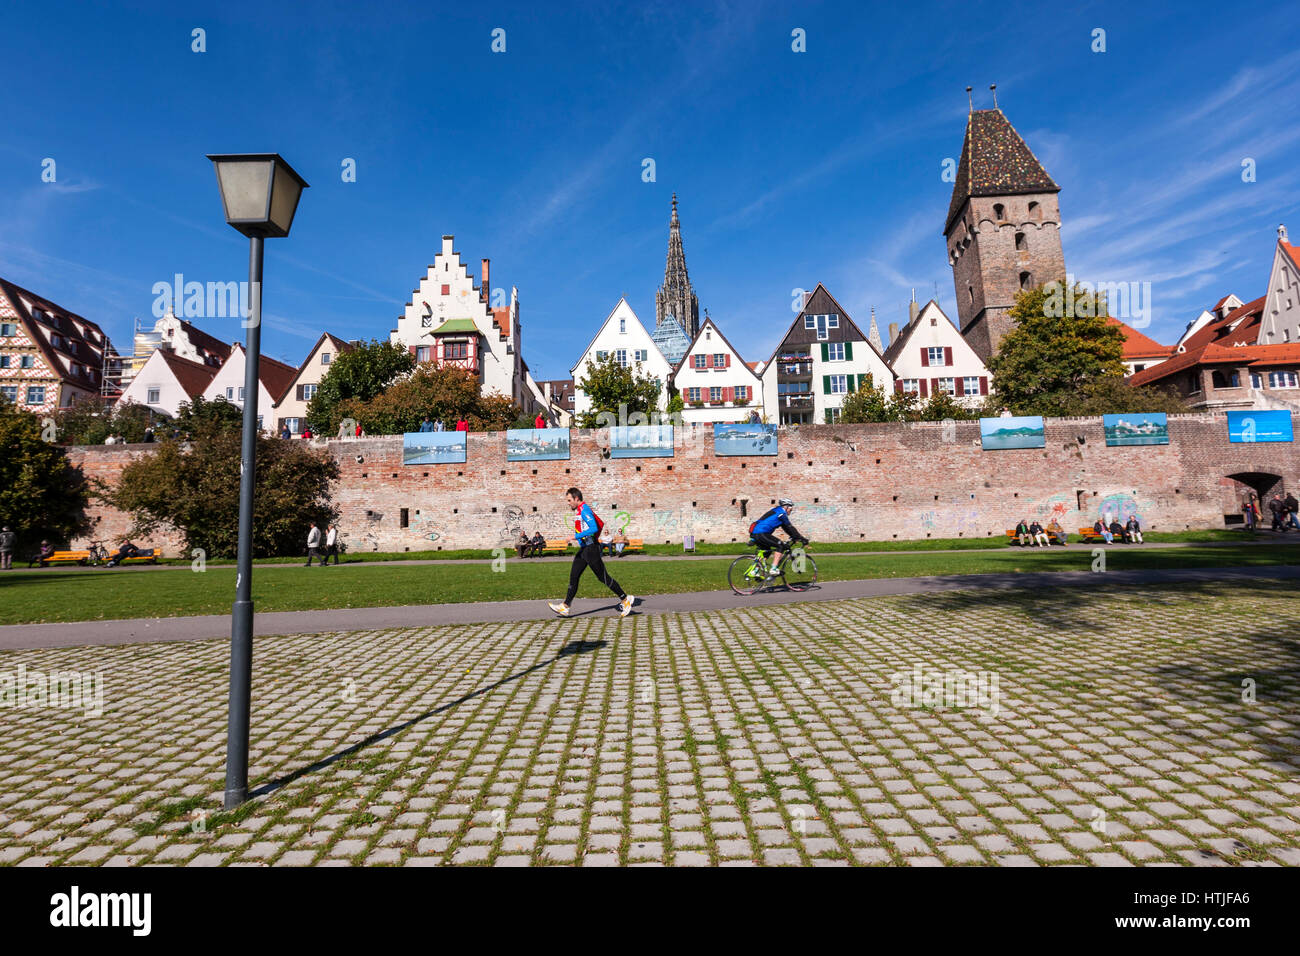 Ulm city walls, with Ulm Minster,  from the River Donau banks, Baden-Württemberg, Germany Stock Photo